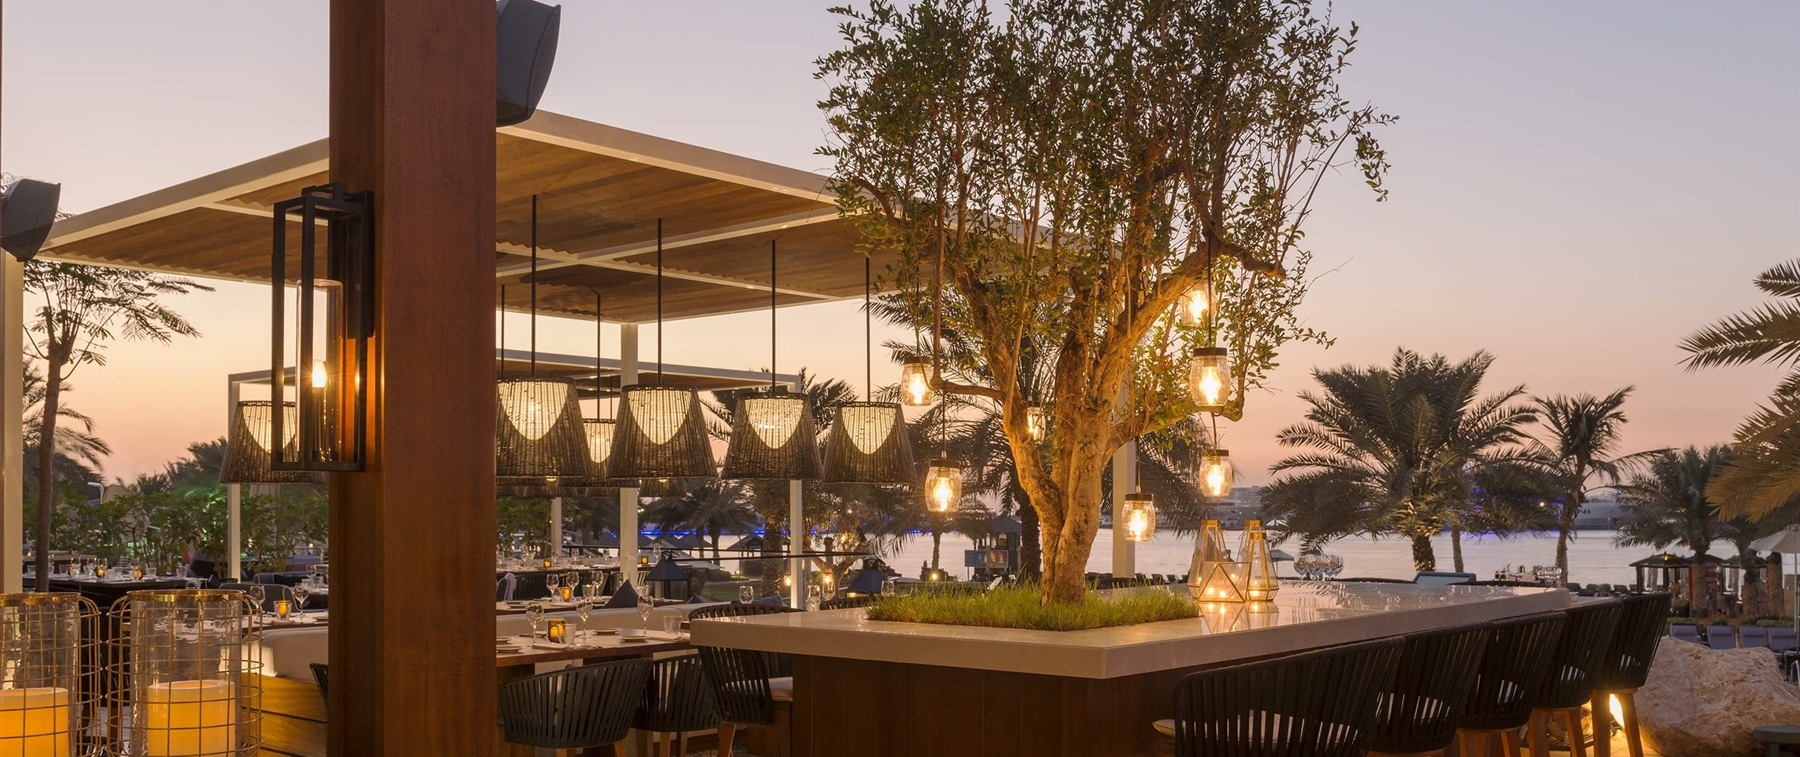 Signature dining experience at Bussola